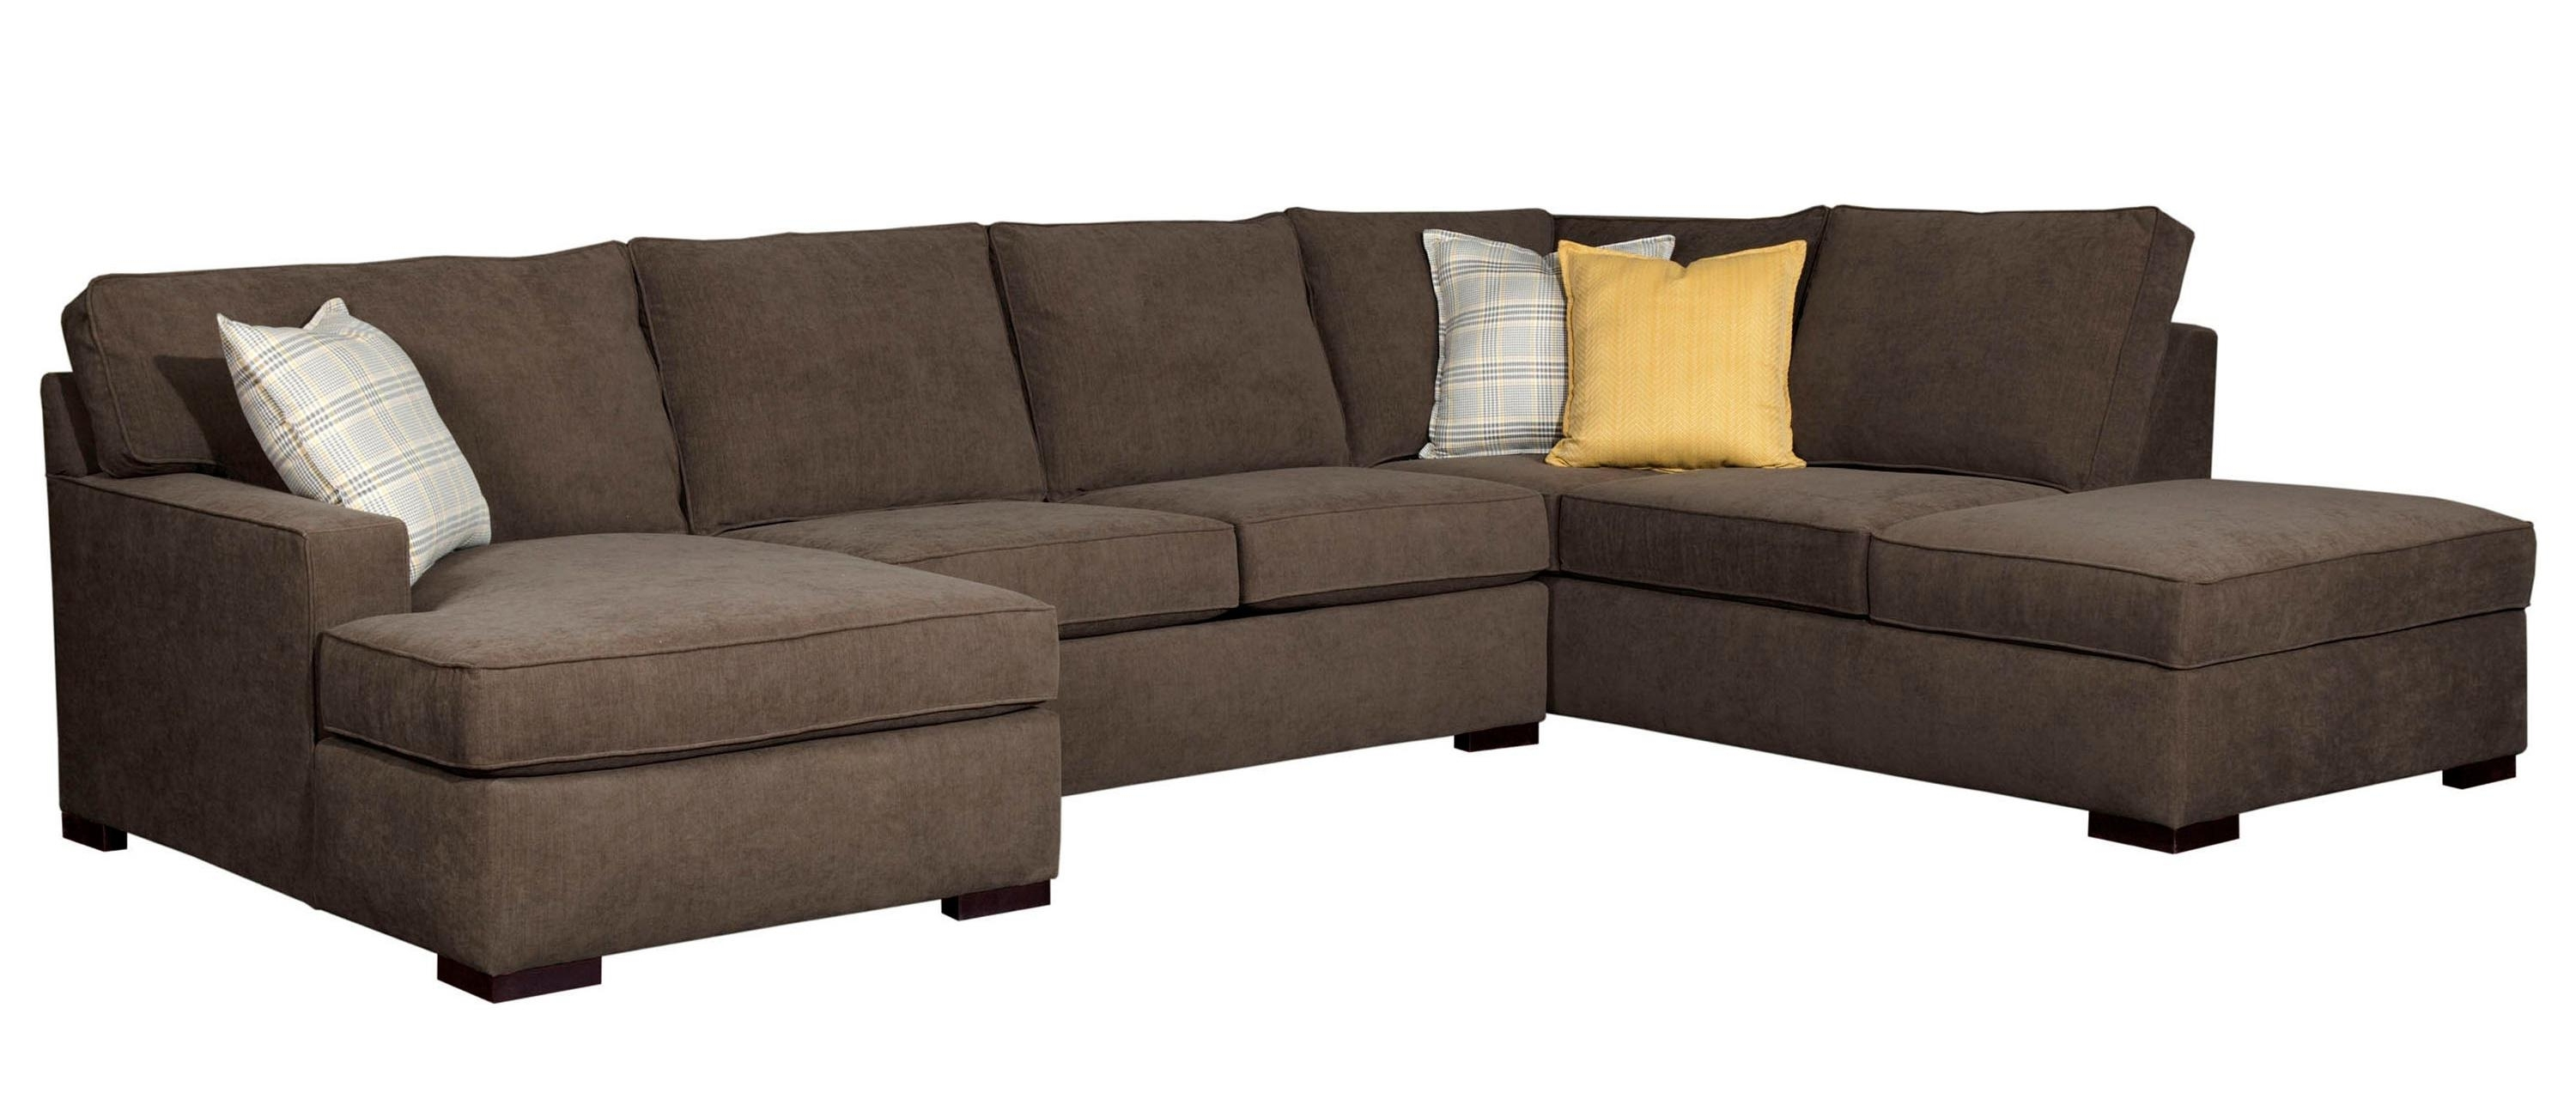 Favorite Broyhill Sectional Sofas Regarding Raphael Contemporary Sectional Sofa With Raf Corner Storage Chaise (View 2 of 20)